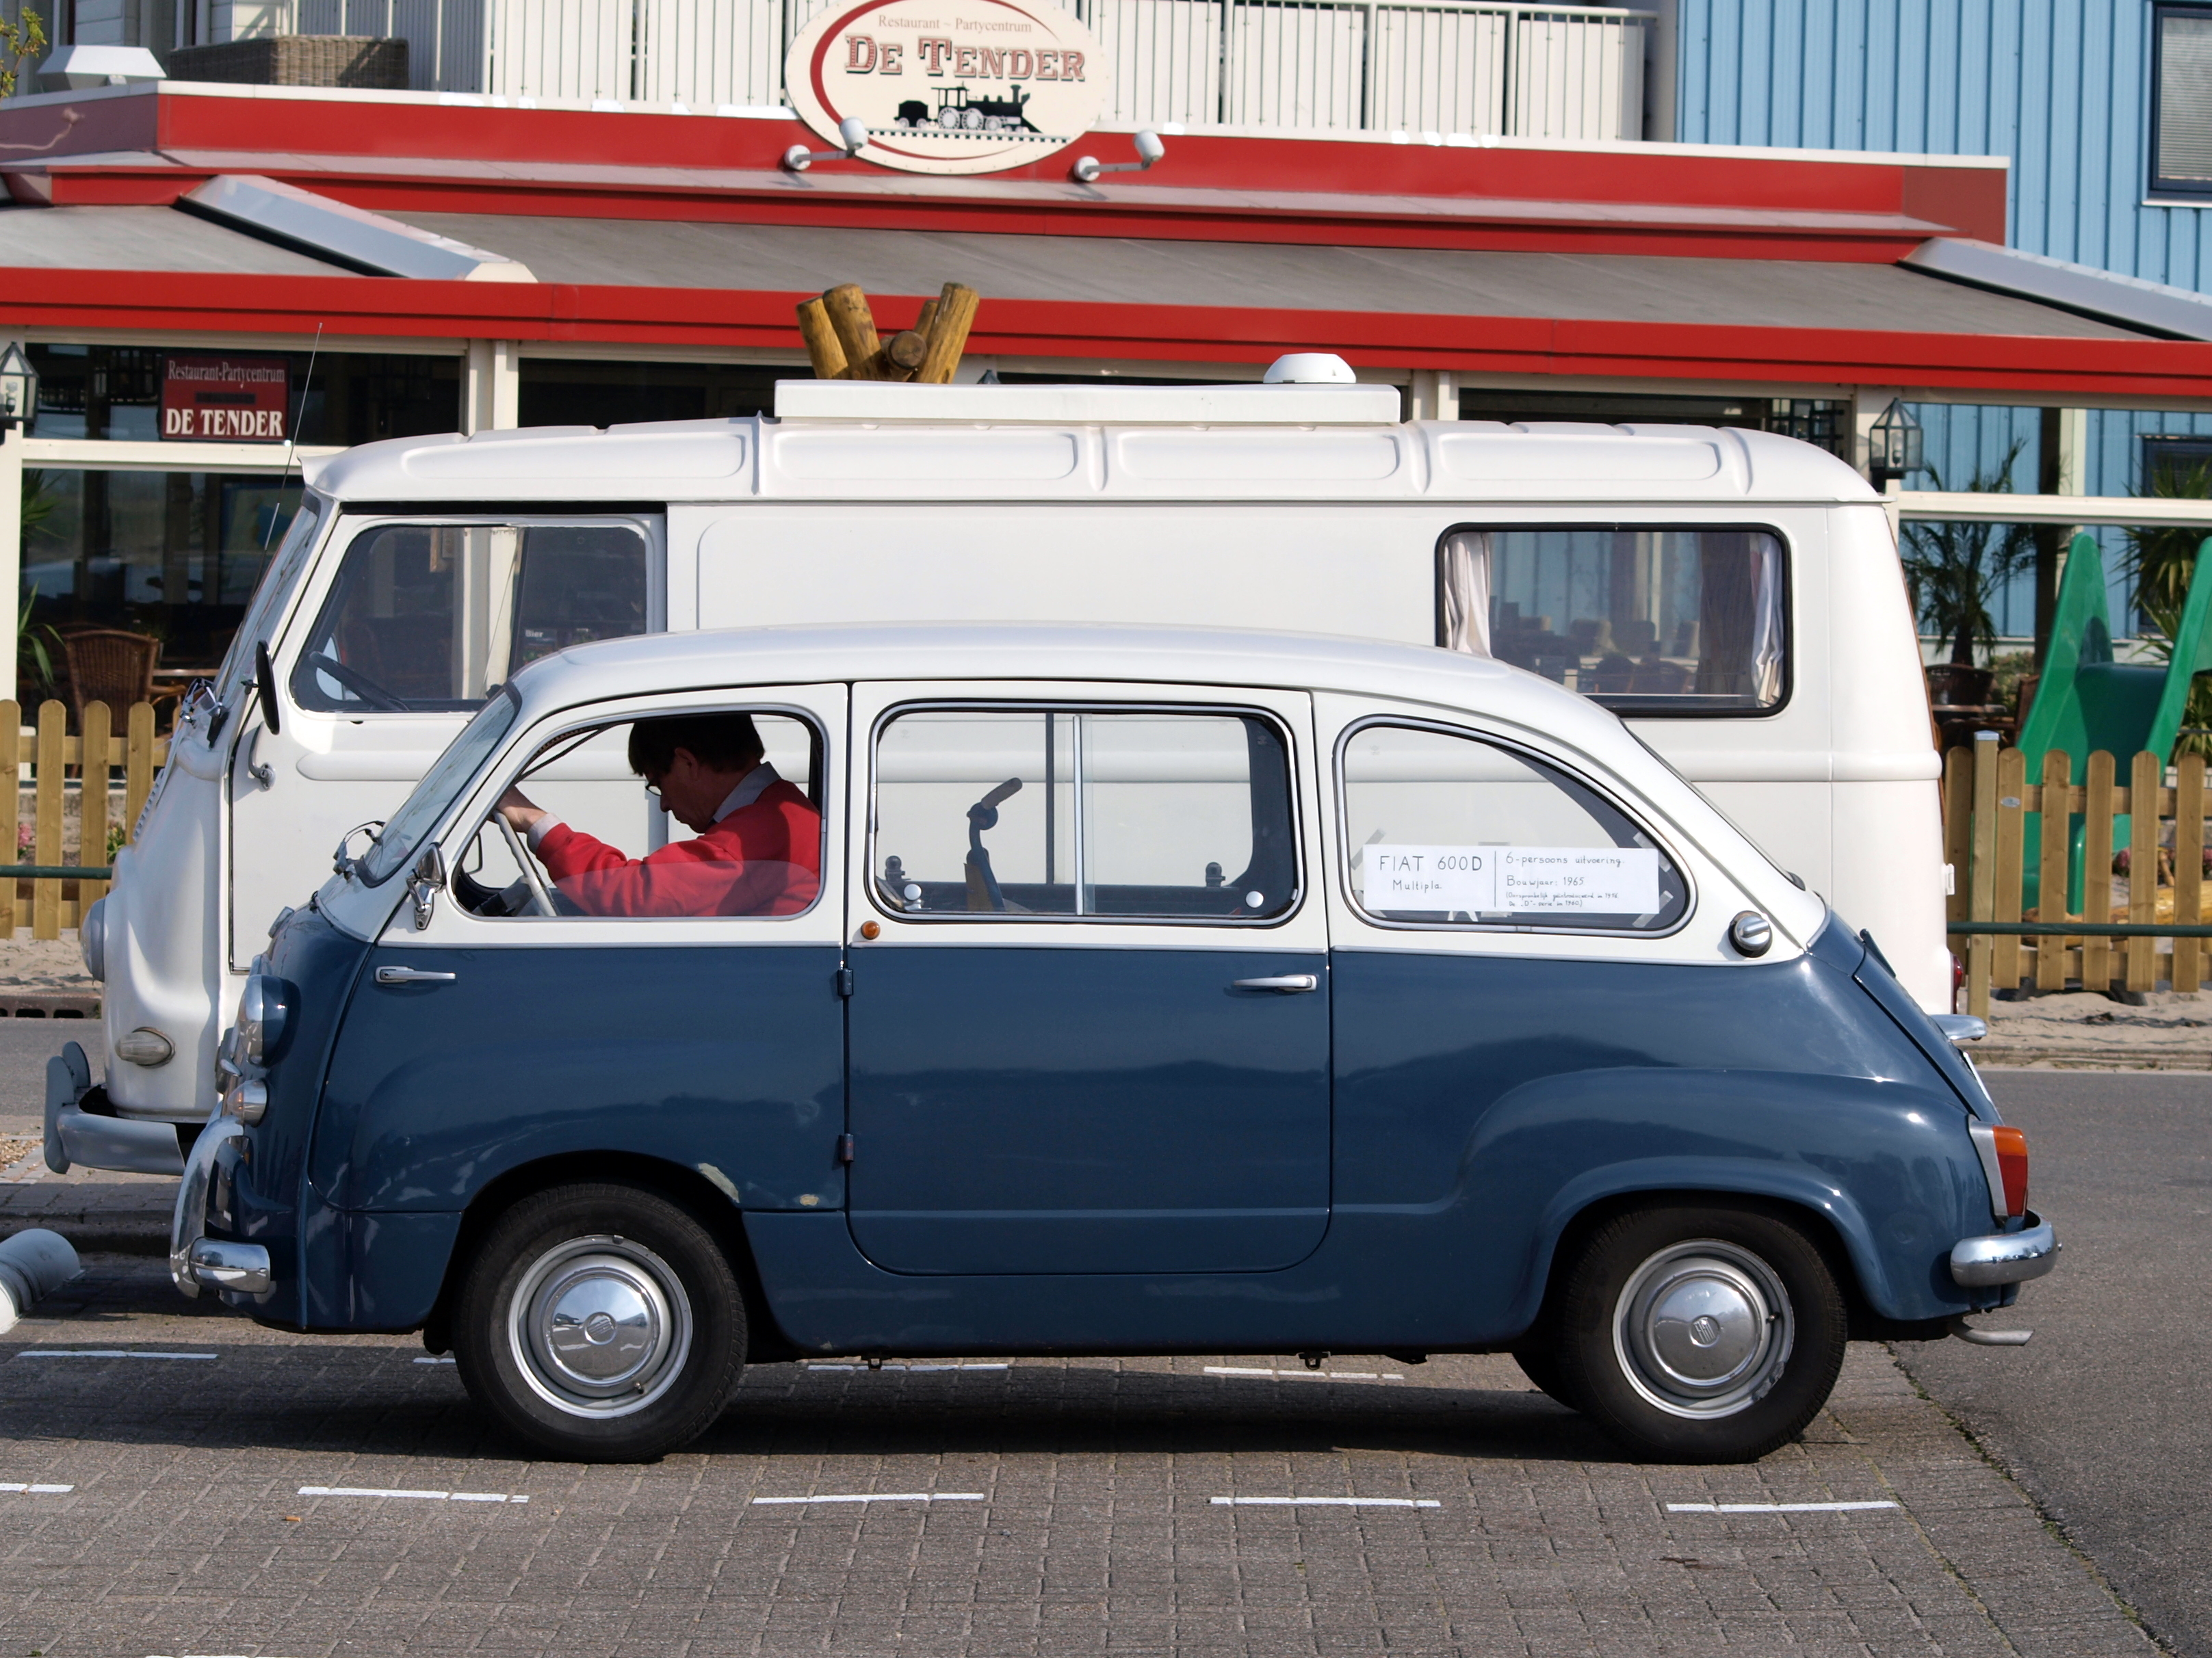 http://upload.wikimedia.org/wikipedia/commons/a/ac/Fiat_600D_Multipla_(1965)_,_Dutch_licence_registration_DM-71-06_pic2.JPG